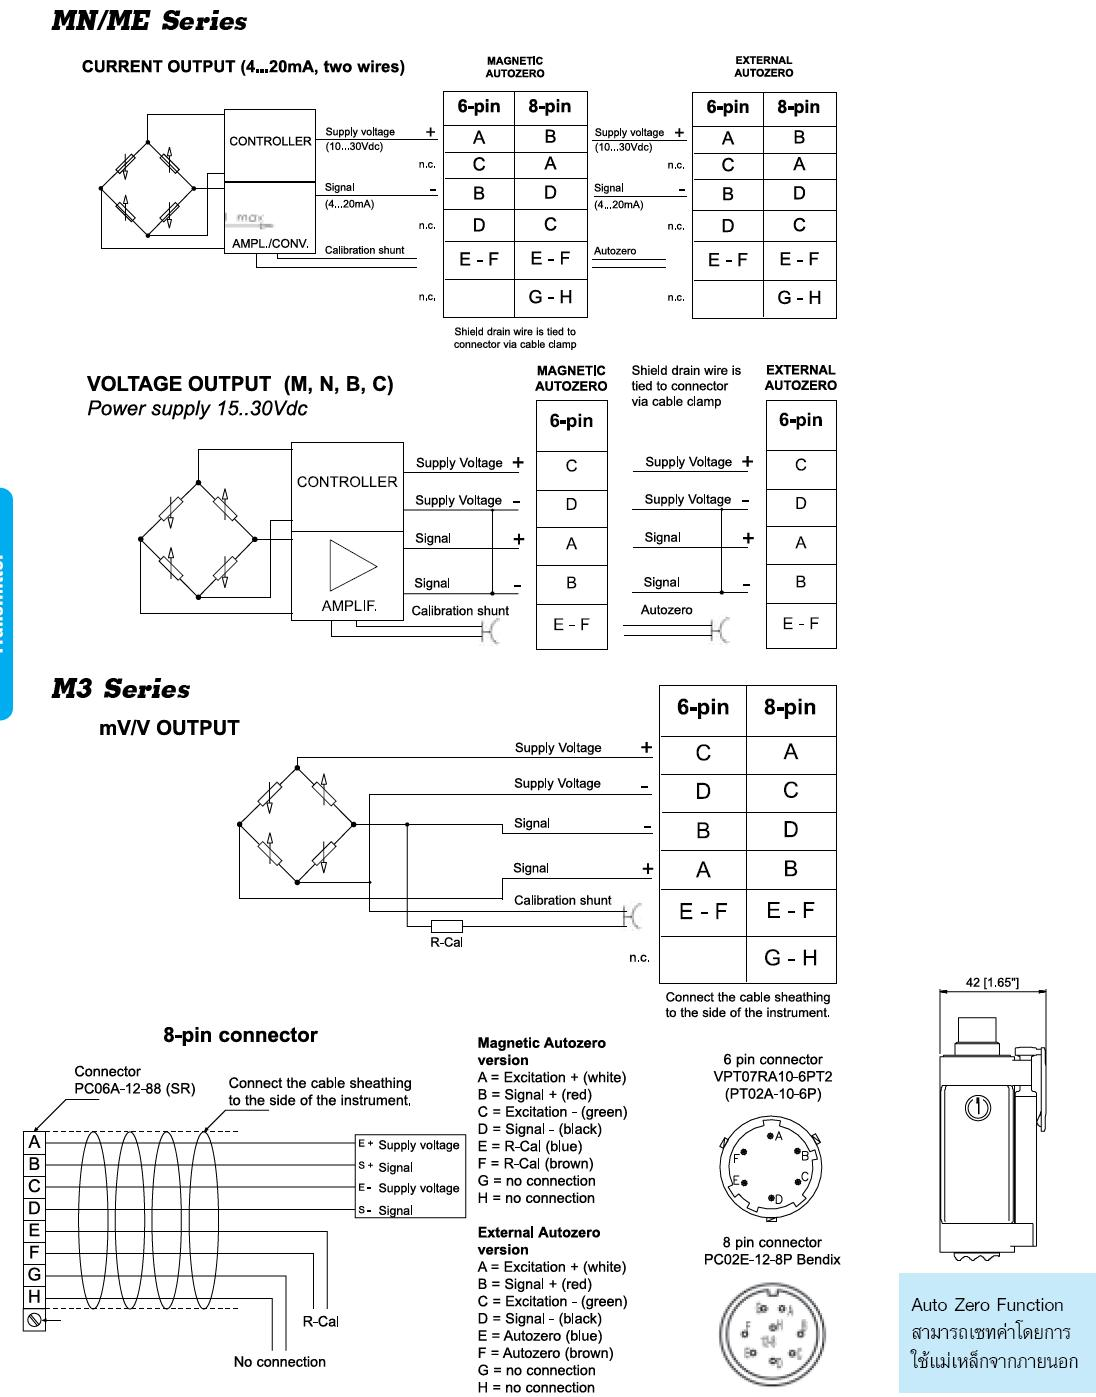 Awesome Pressure Transducer Wiring Diagram Truck Gallery ...